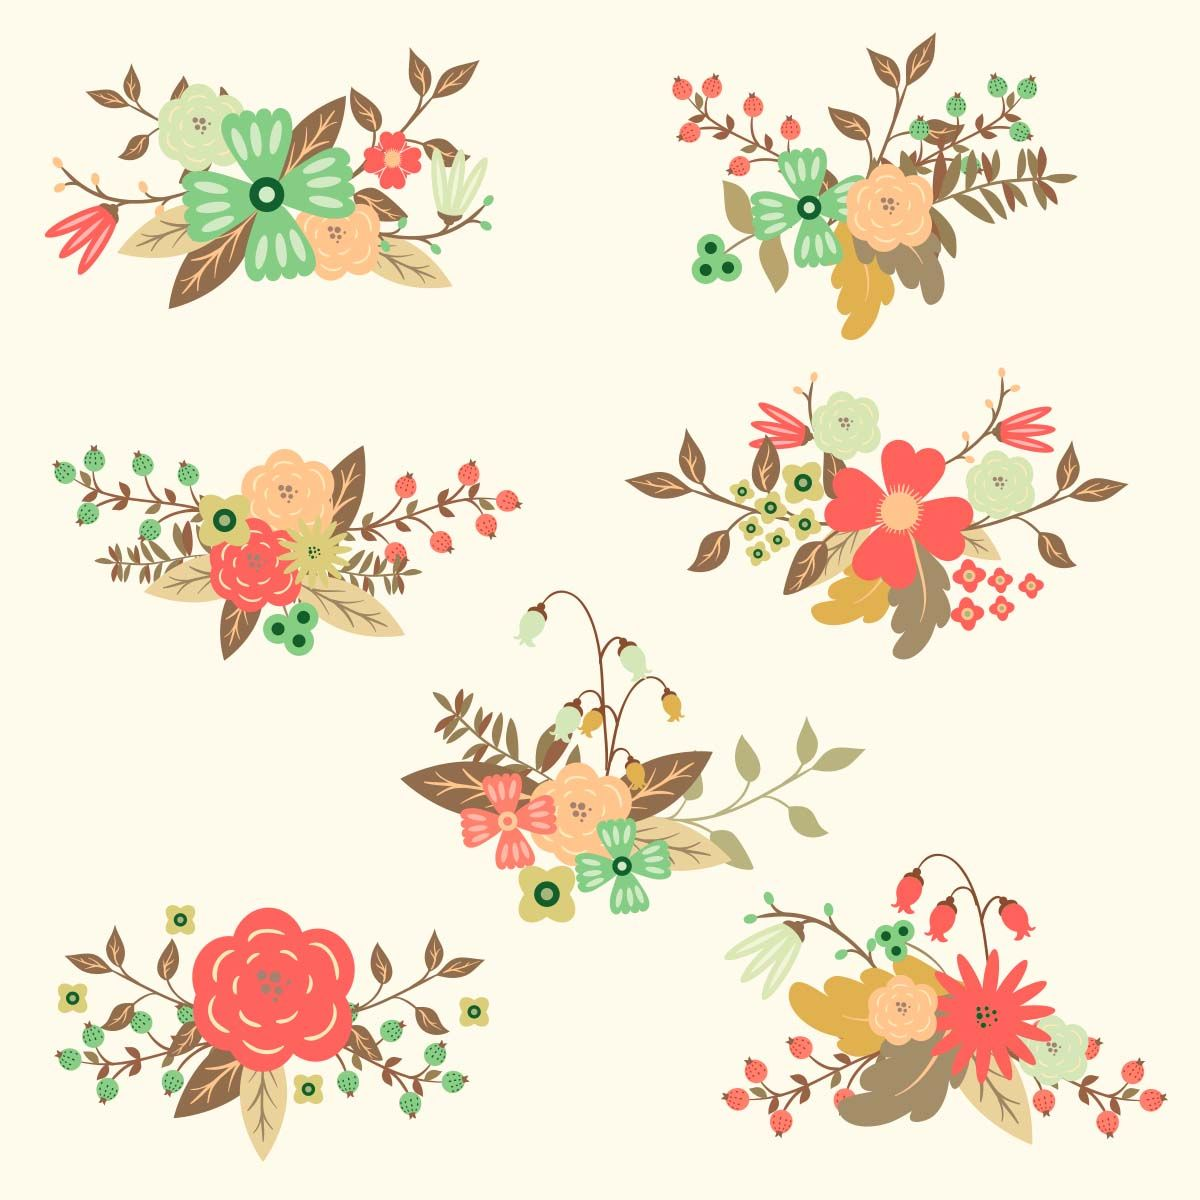 Free vector floral hand drawn set Vector free, Free hand